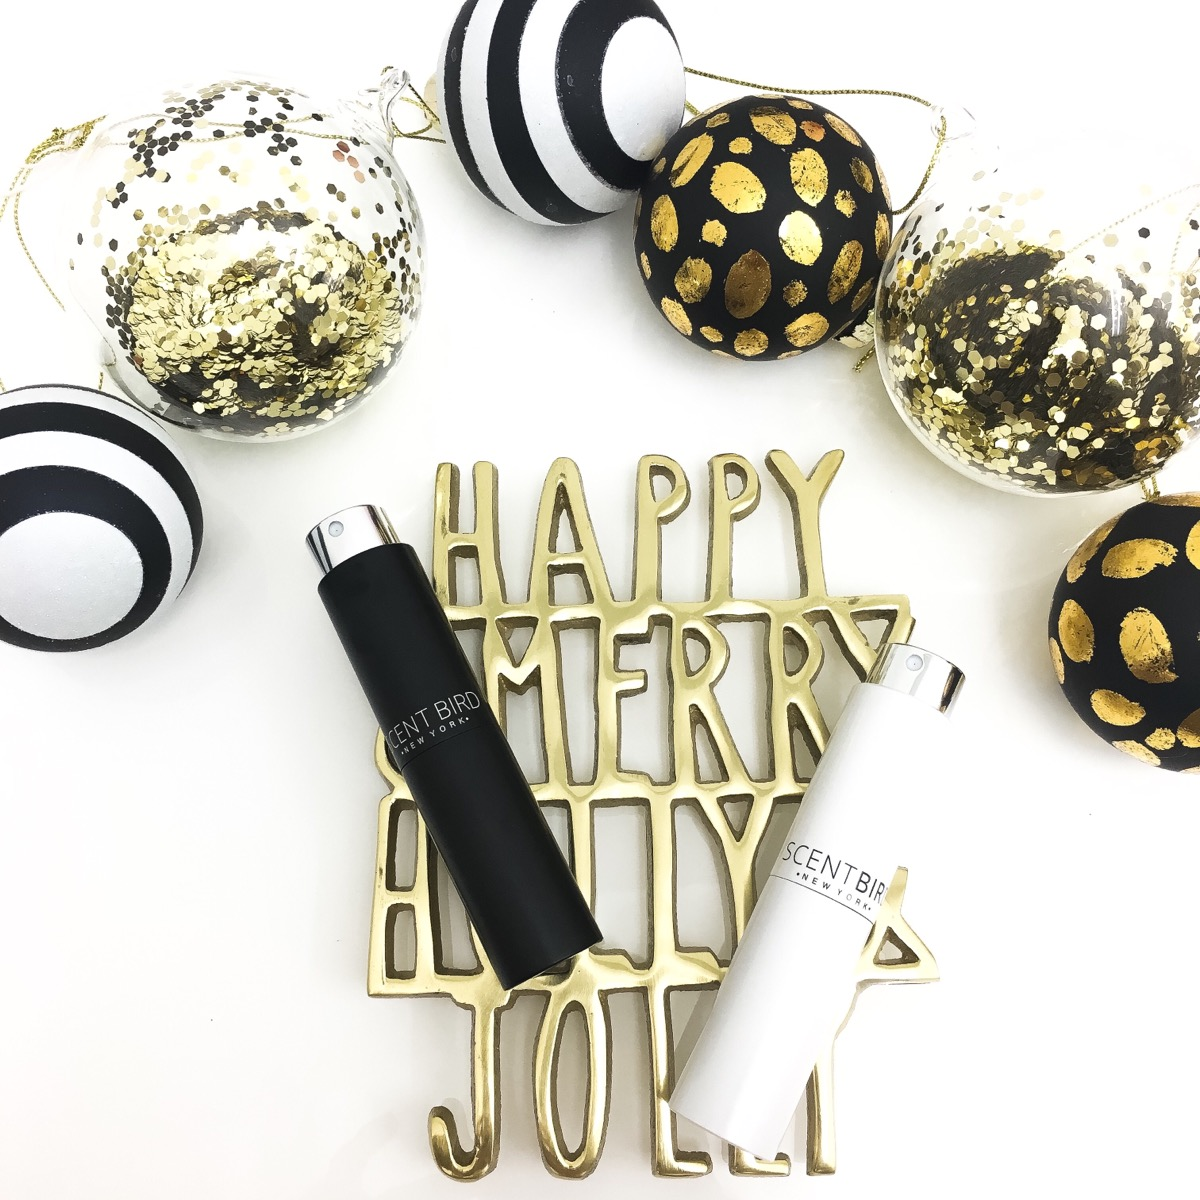 SCENTBIRD's 2016 Holiday Gift Guide